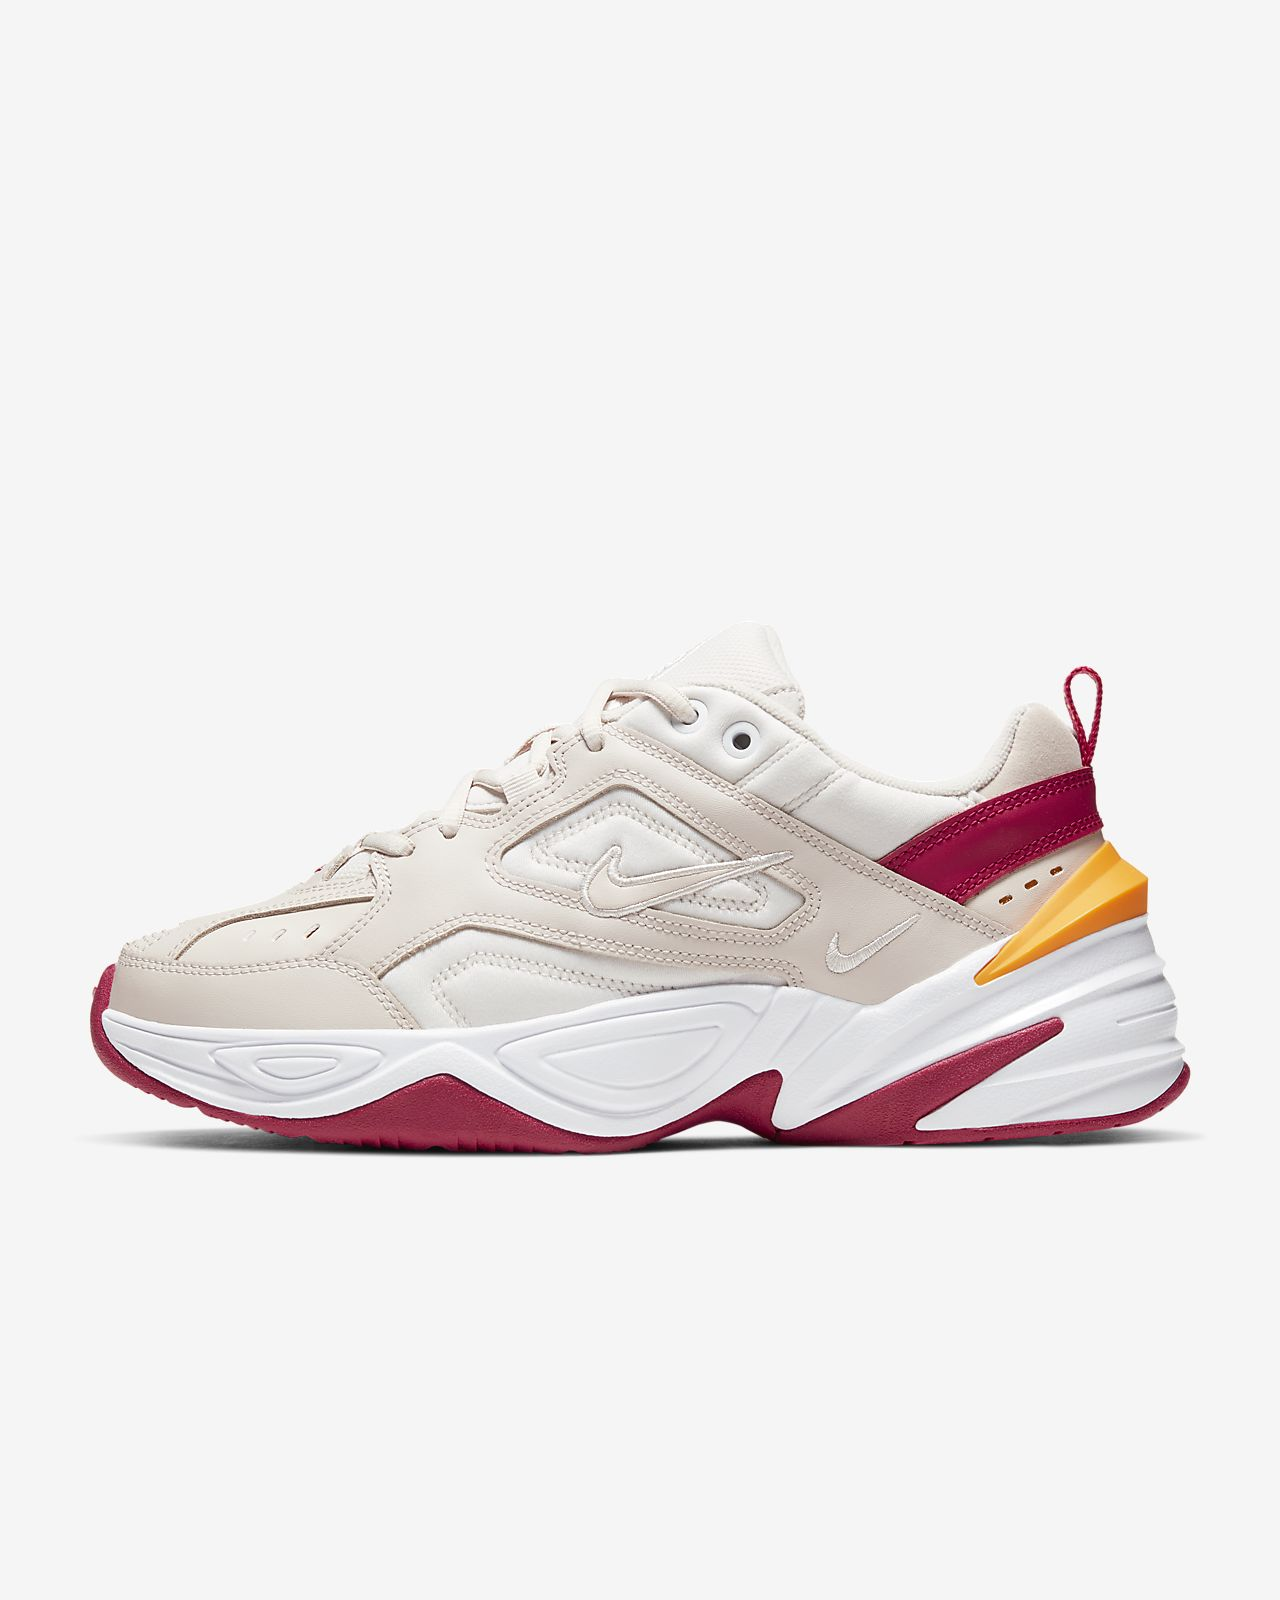 nike m2k tekno foot locker